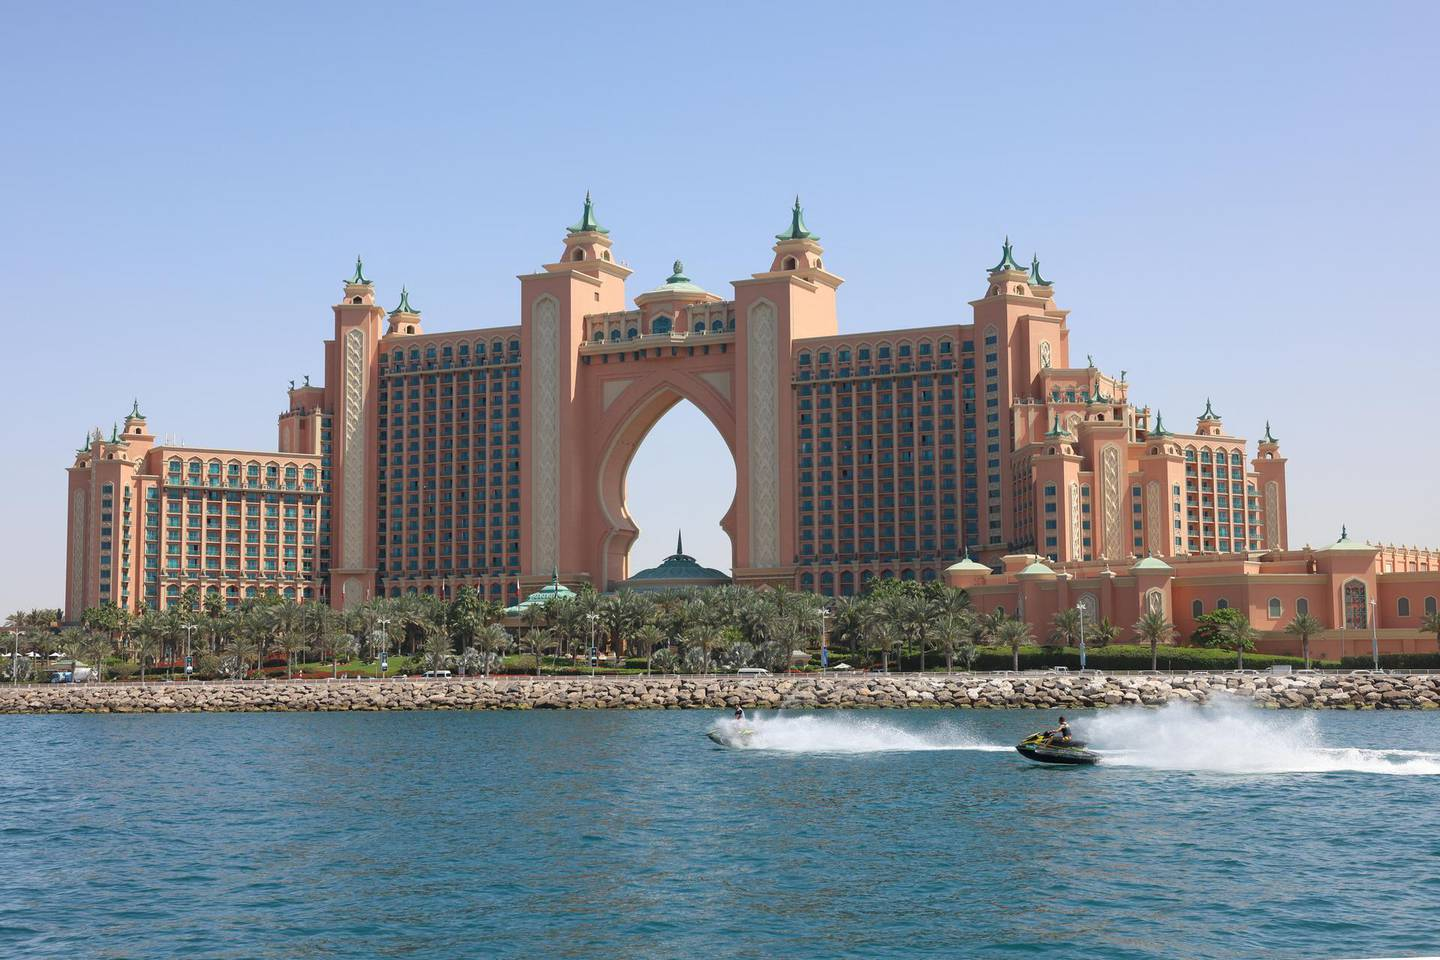 This picture taken on March 3, 2021, shows a view of the Atlantis hotel on the Palm in Dubai in the United Arab Emirates. (Photo by GIUSEPPE CACACE / AFP)